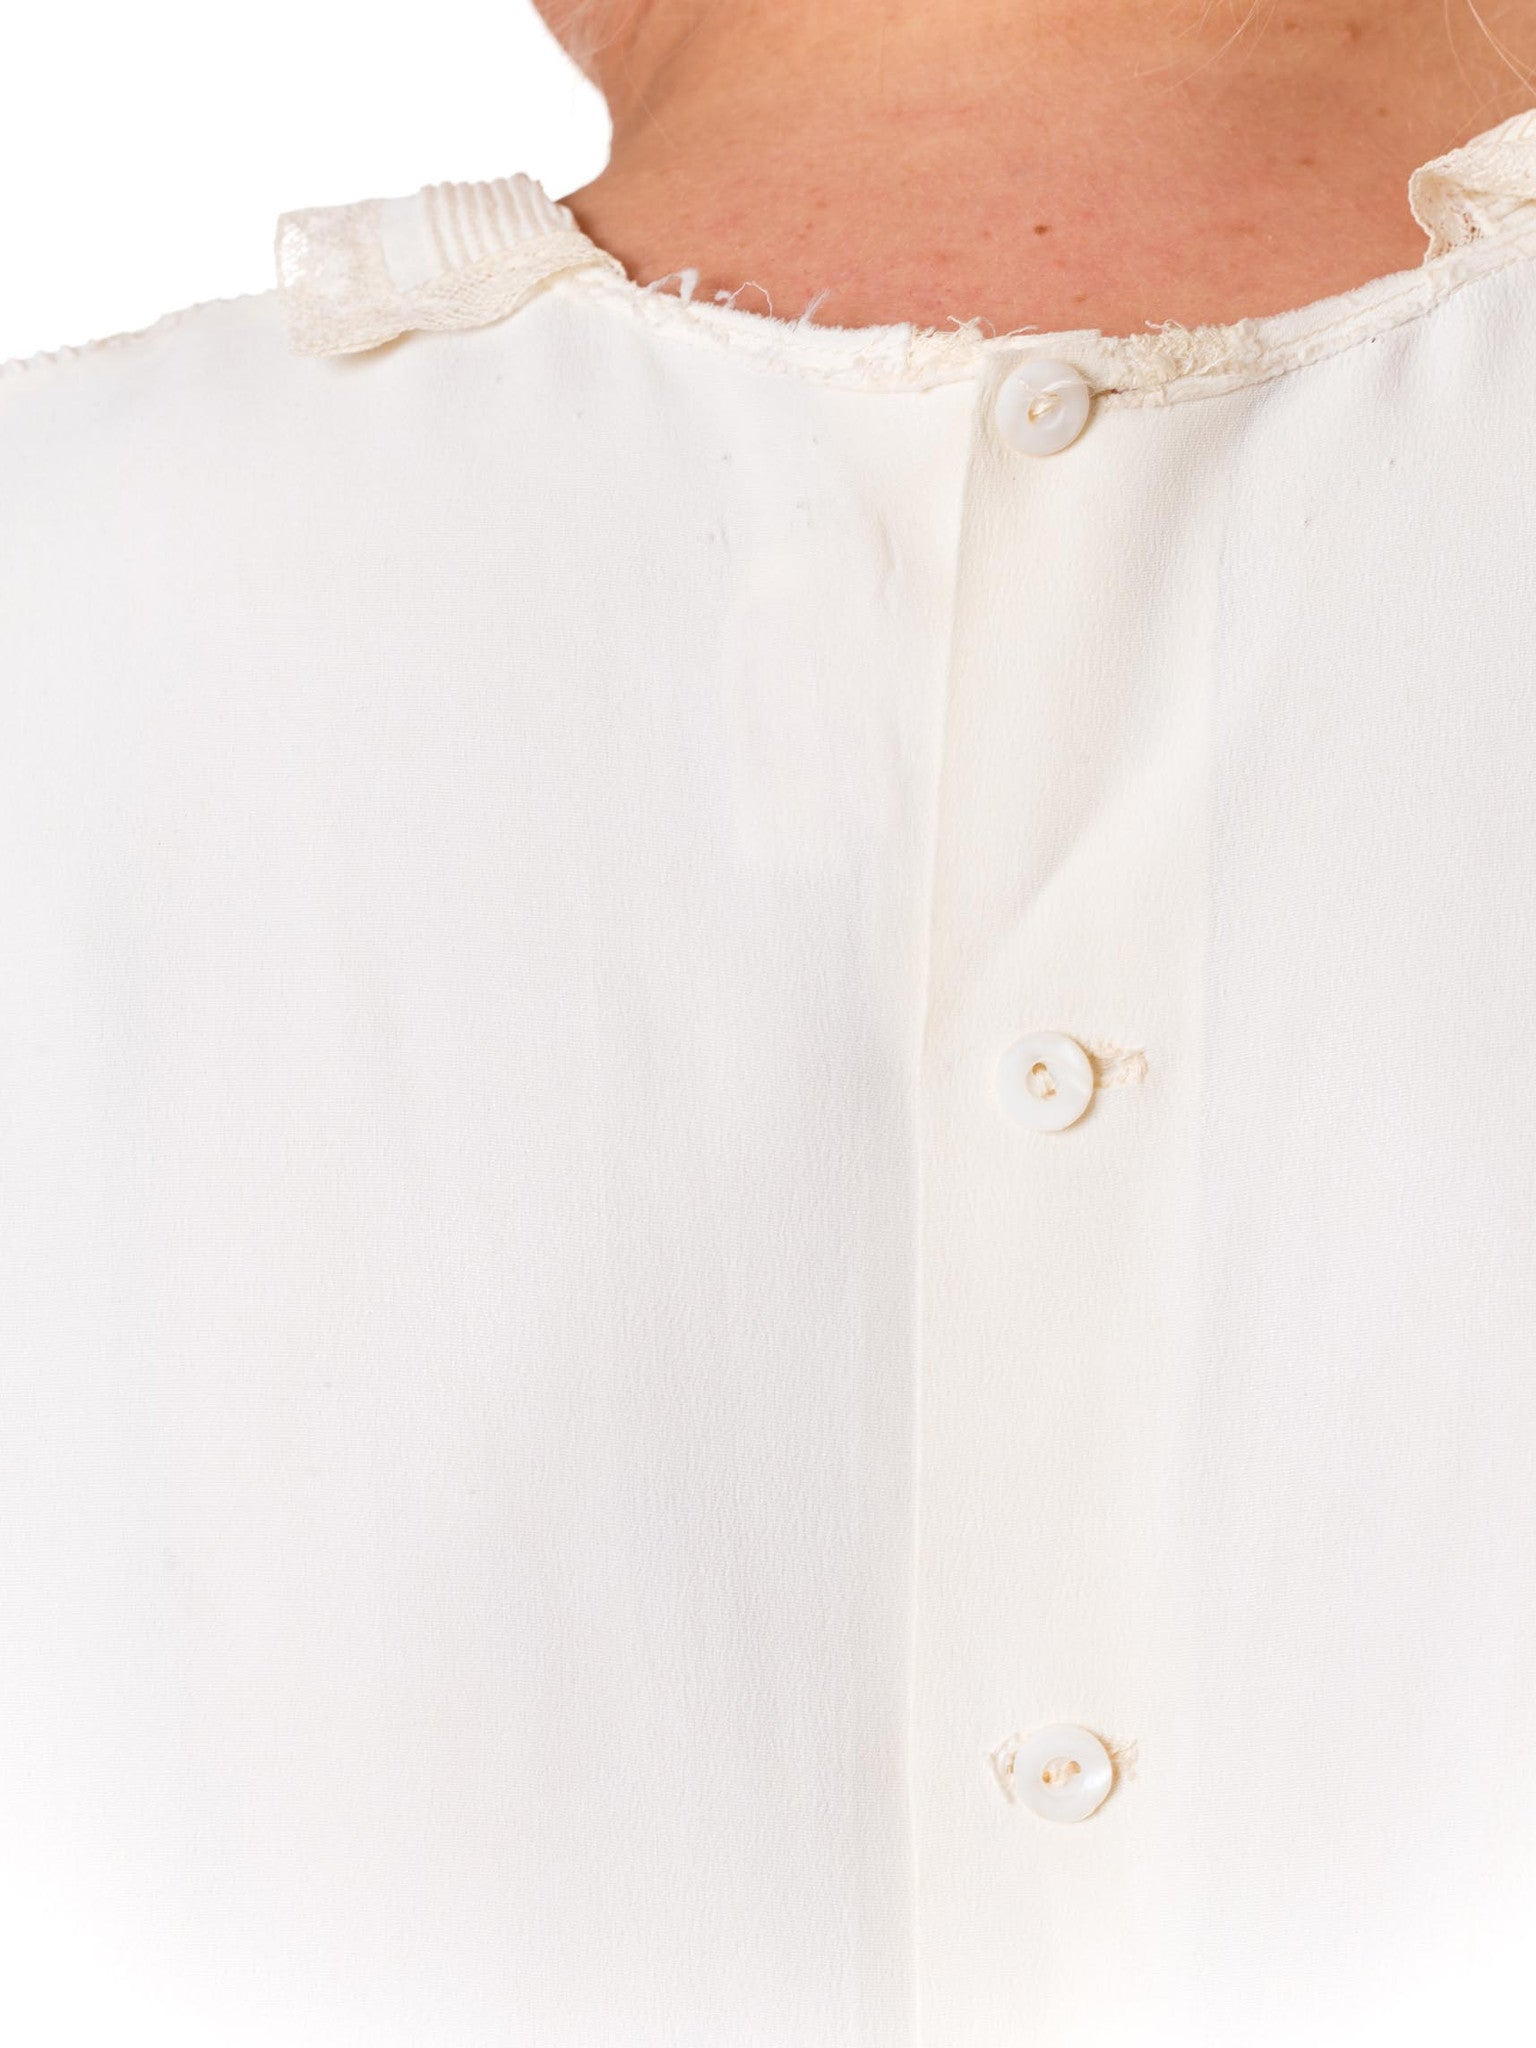 1940s Rayon and Lace Blouse